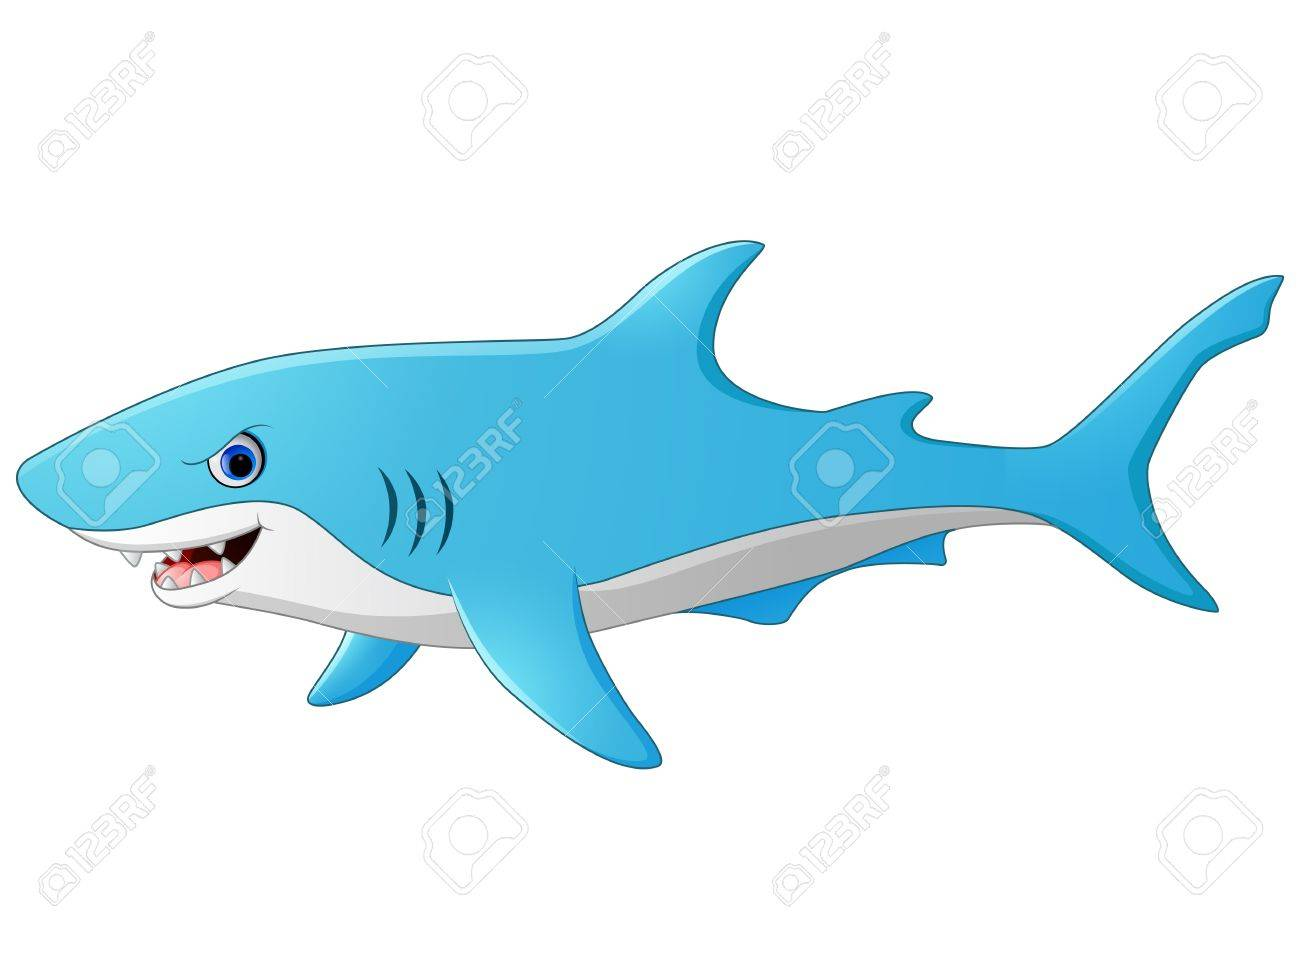 Cute Cartoon Shark Royalty Free Cliparts Vectors And Stock Illustration Image 56383093